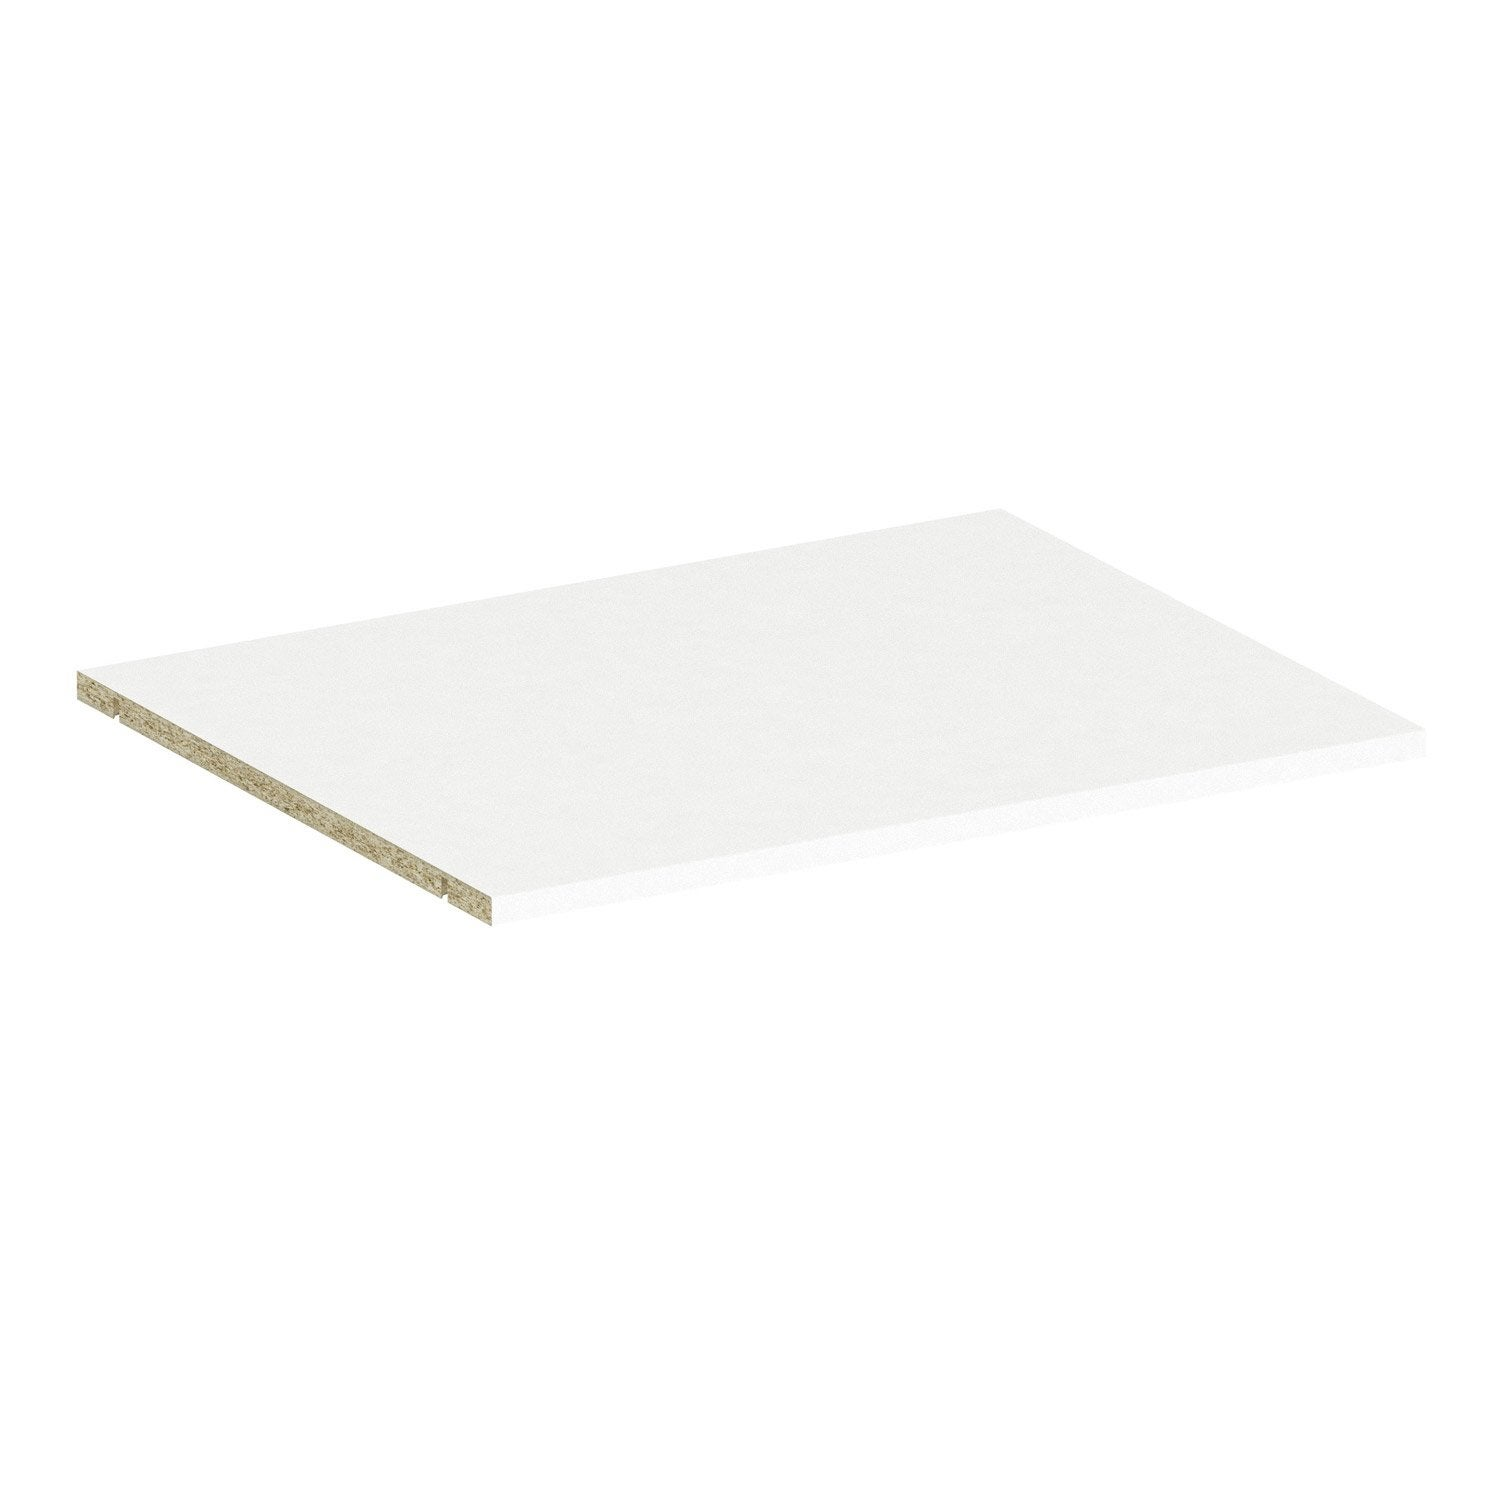 Tablette SPACEO Home 1.6 x 60 x 45 cm, blanc | Leroy Merlin